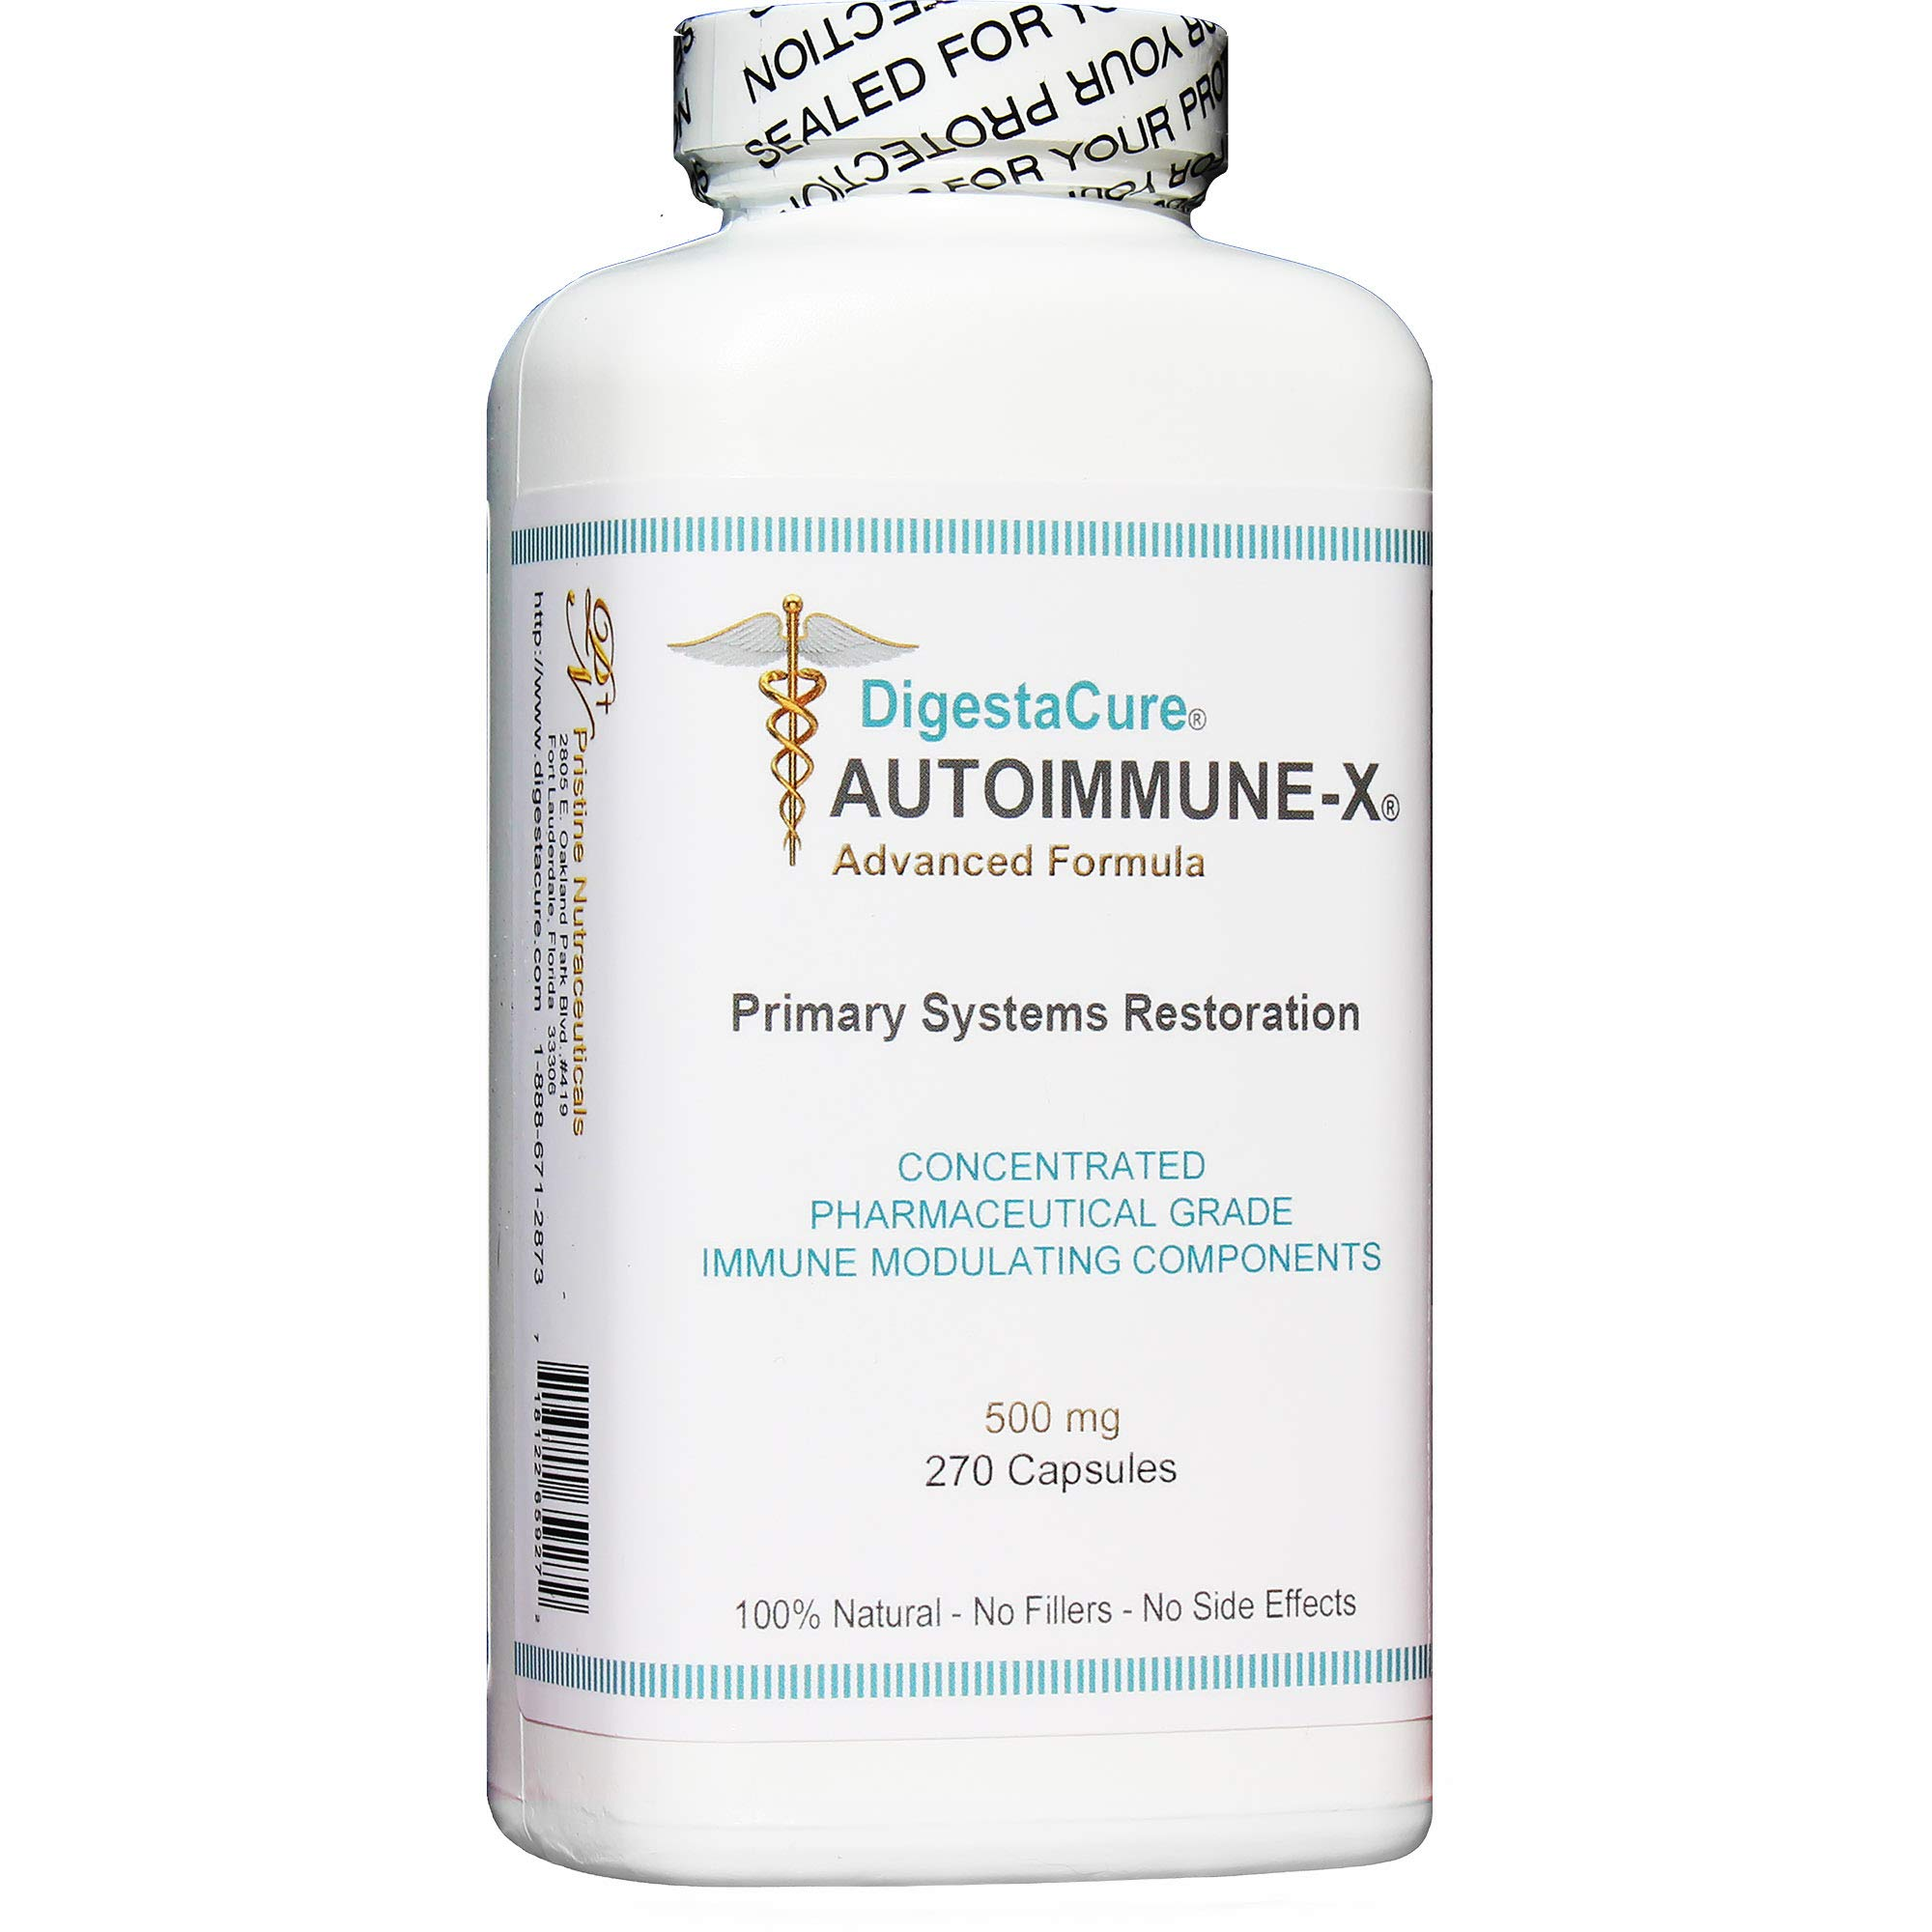 DigestaCure® AUTOIMMUNE-X® Advanced Formula: Concentrated Immune Modulating Components. 100% Natural. 270 Capsules.